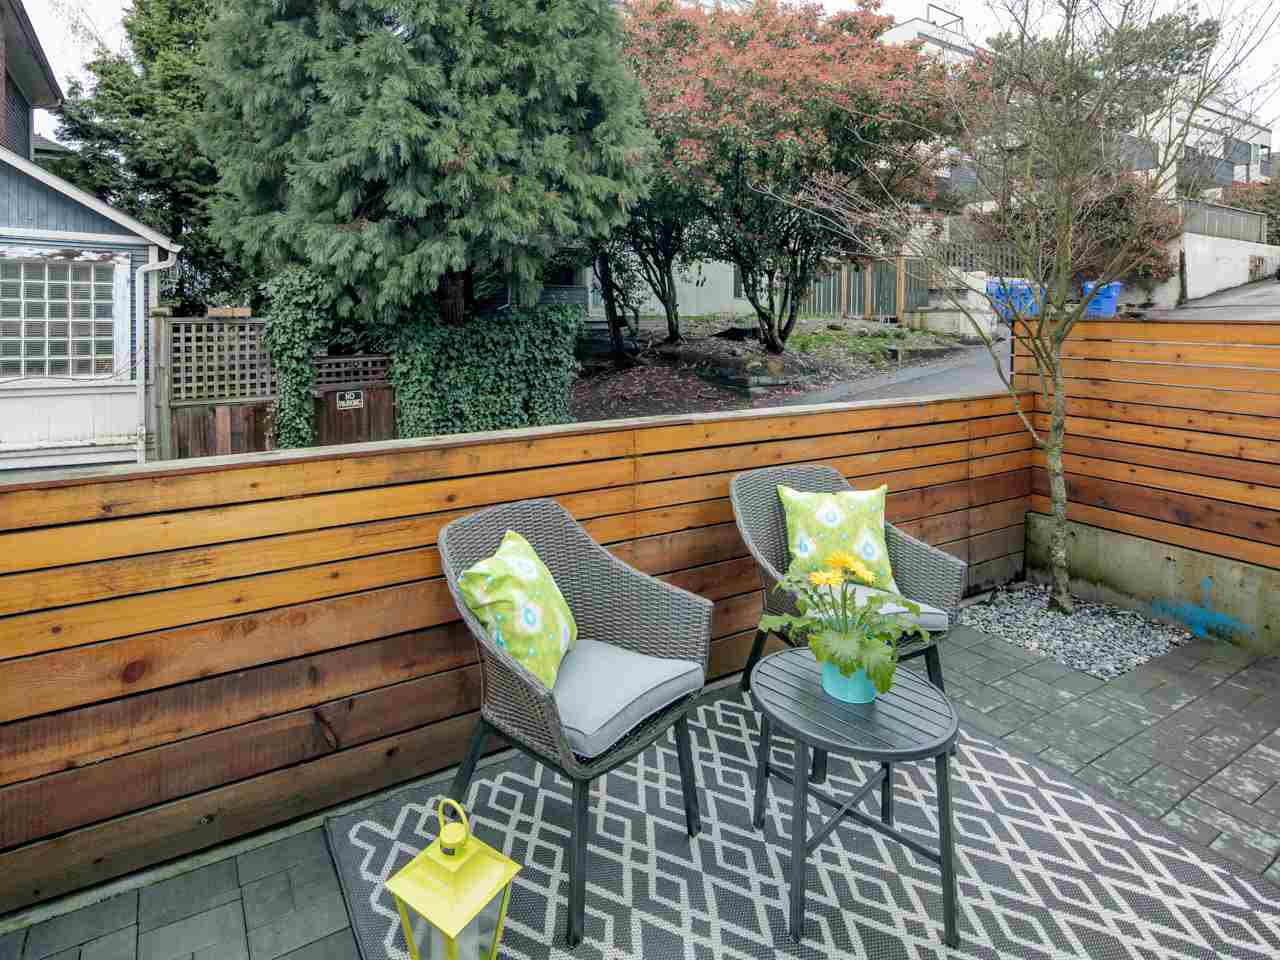 Photo 18: Photos: 4 1411 E 1ST AVENUE in Vancouver: Grandview VE Townhouse for sale (Vancouver East)  : MLS®# R2254853